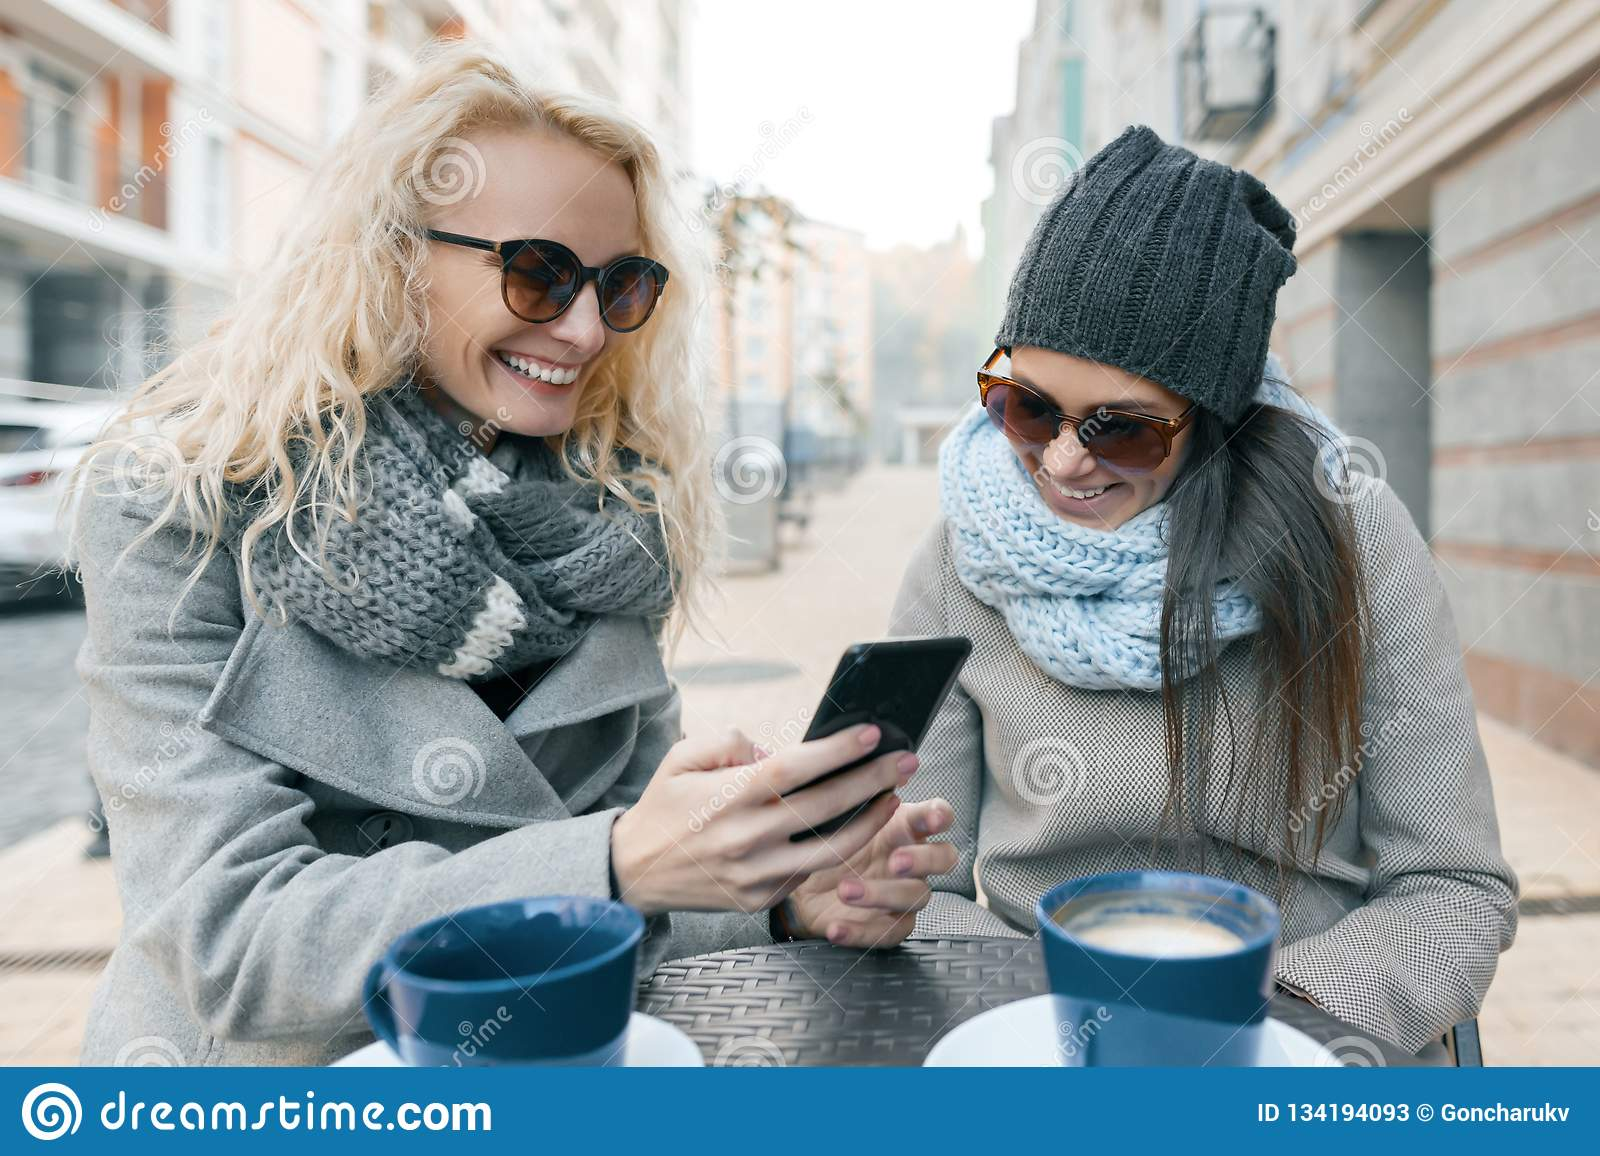 Two young smiling fashionable women having fun in outdoor cafe. Urban background, women laughing looking at mobile phone